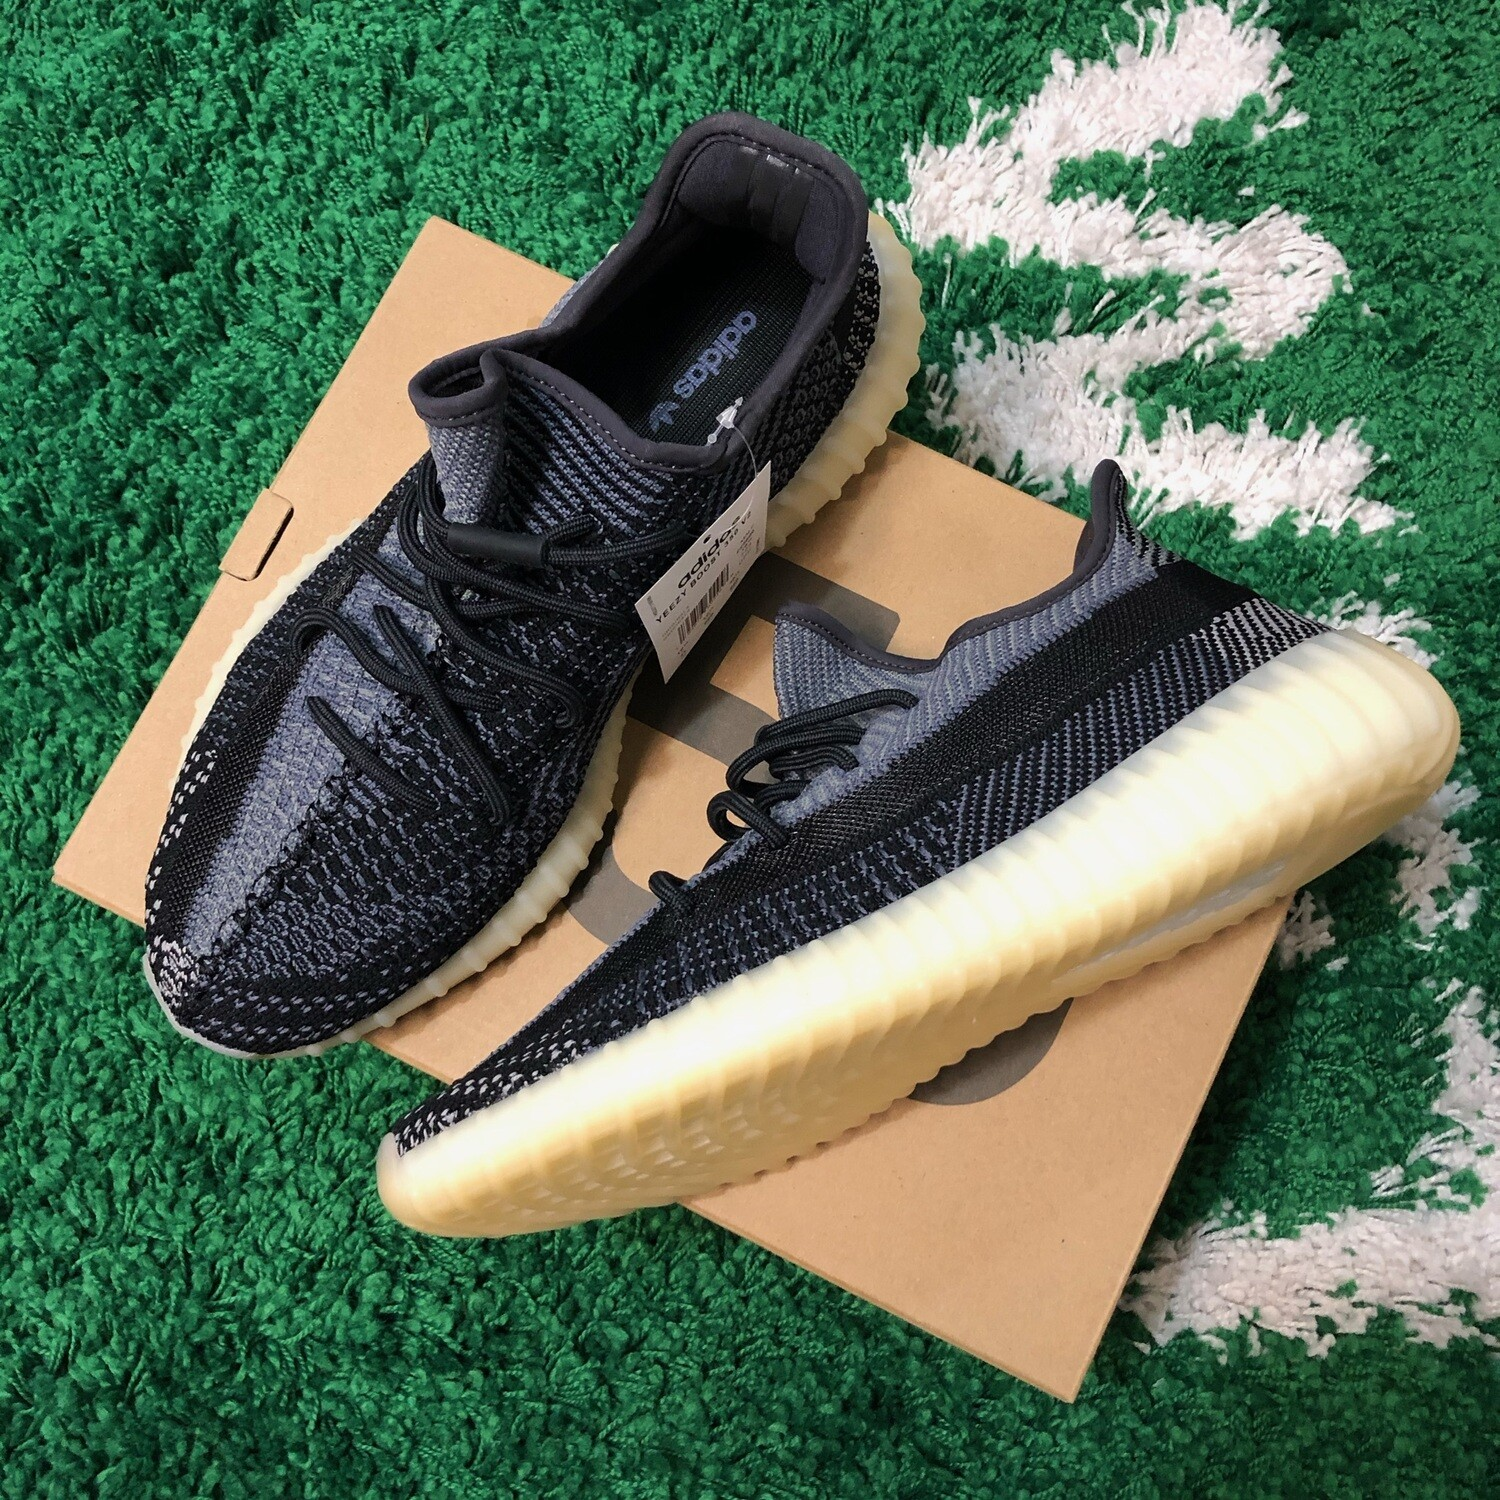 Adidas Yeezy Boost Carbon Size 10.5